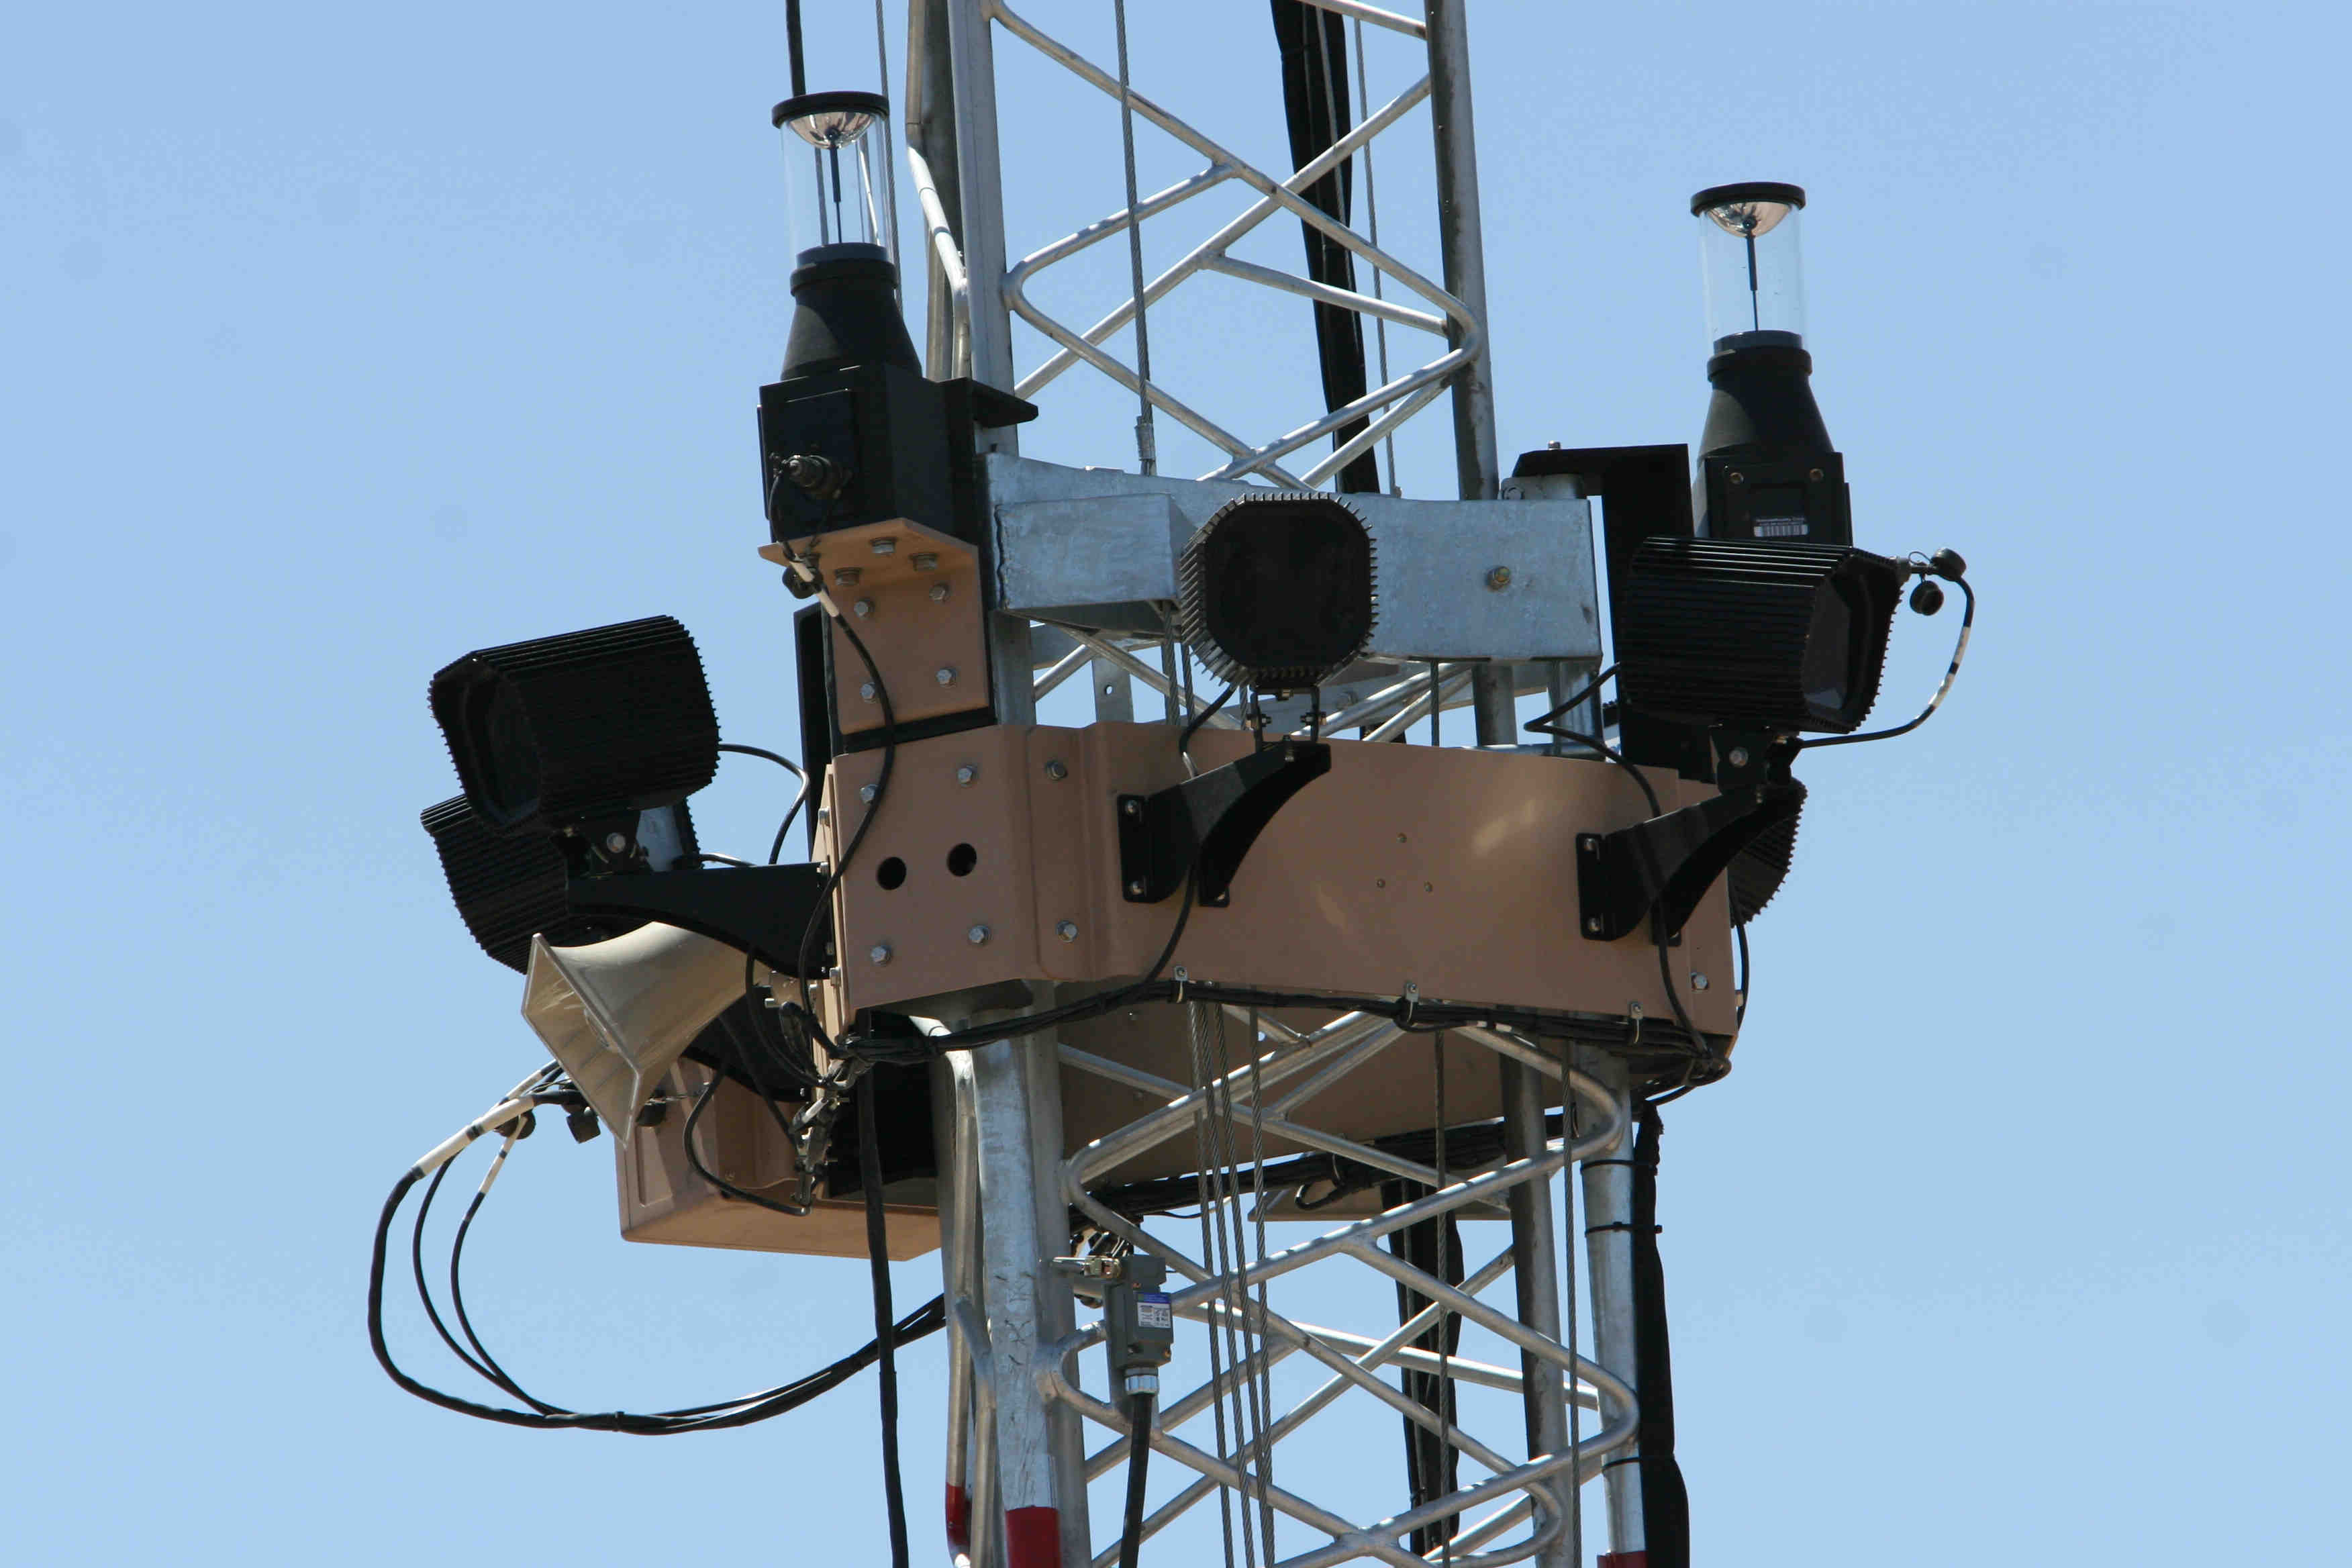 Some of the technology used by the U.S. federal government to monitor the border with Mexico.